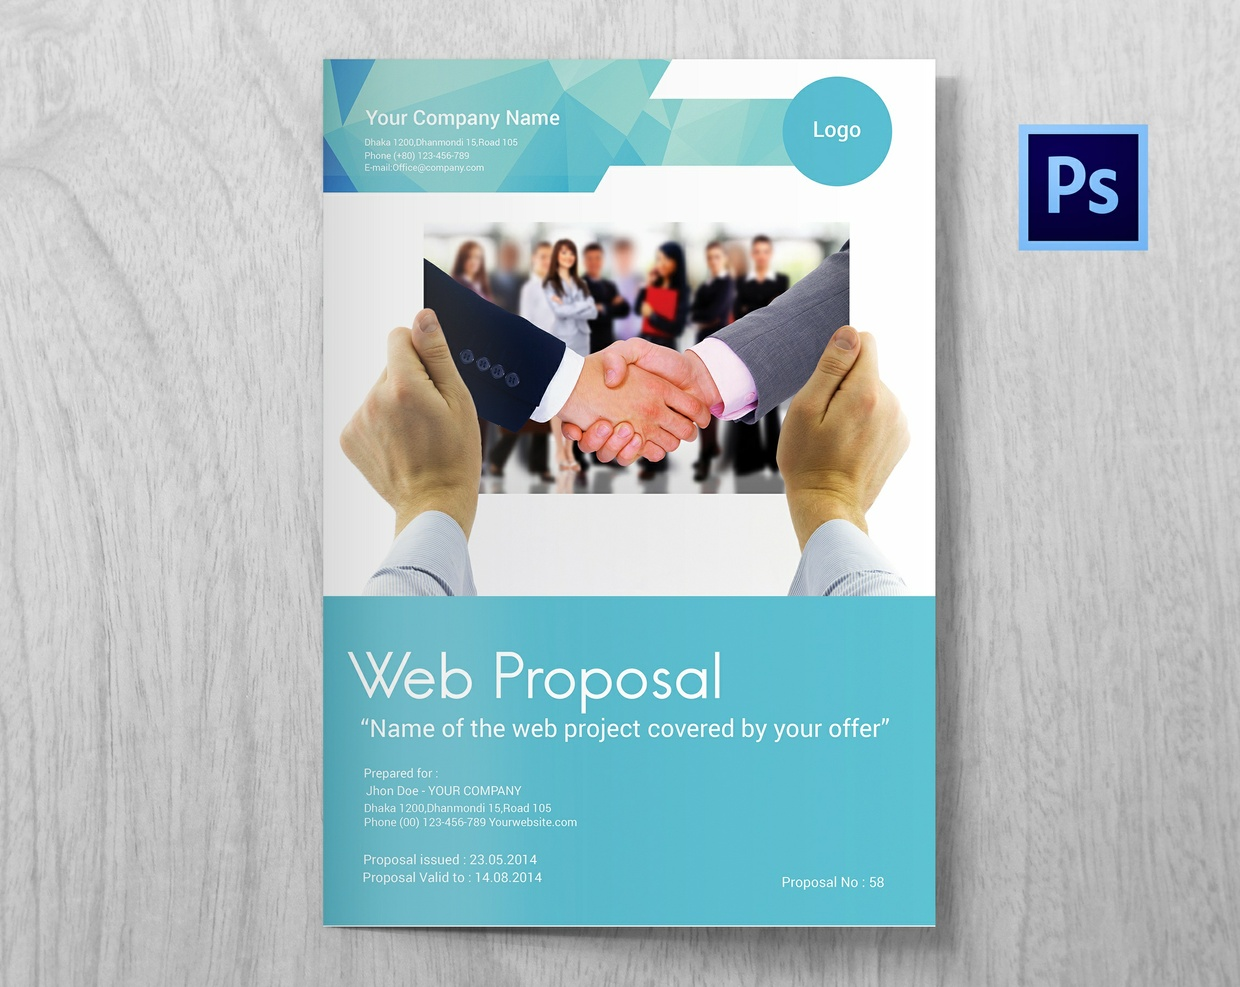 proposal on website design and your